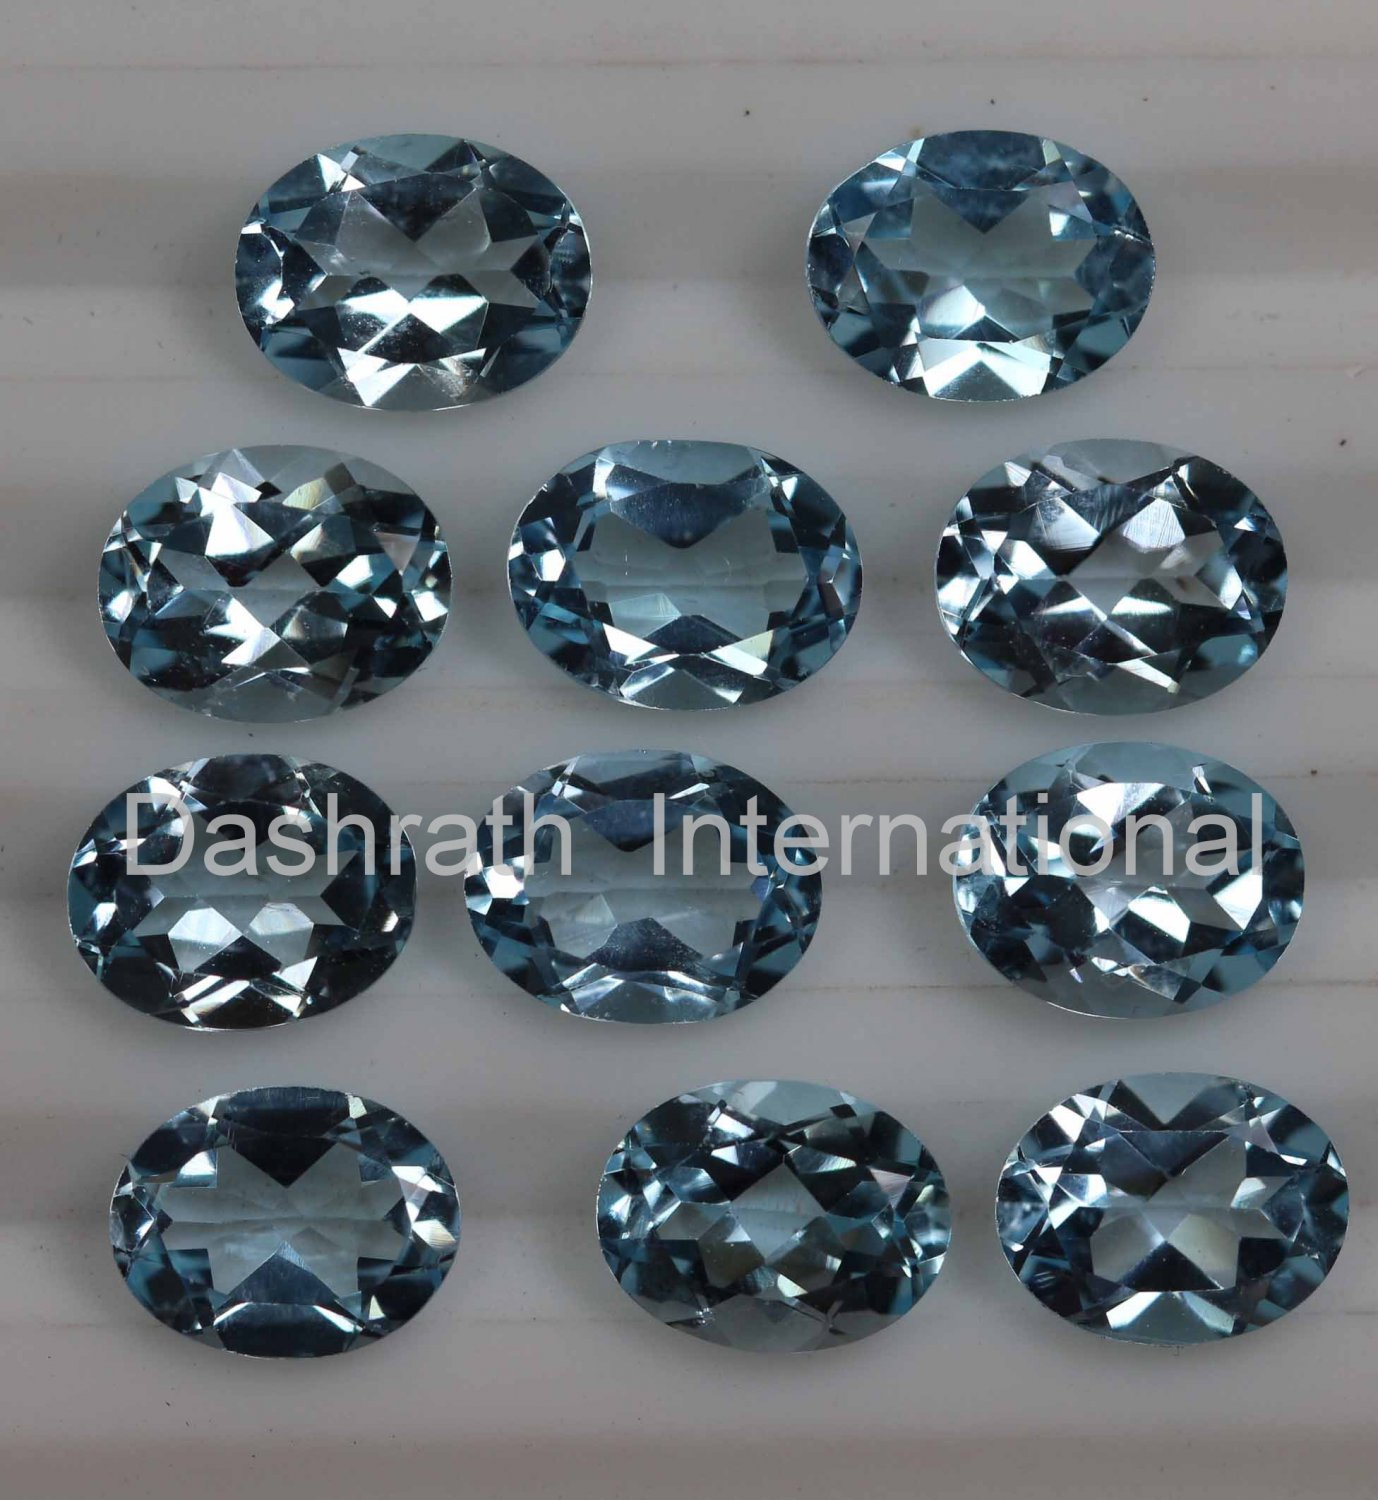 5x3mm Natural Sky Blue Topaz Faceted Cut Oval  10 Pieces Lot  Top Quality Loose Gemstone